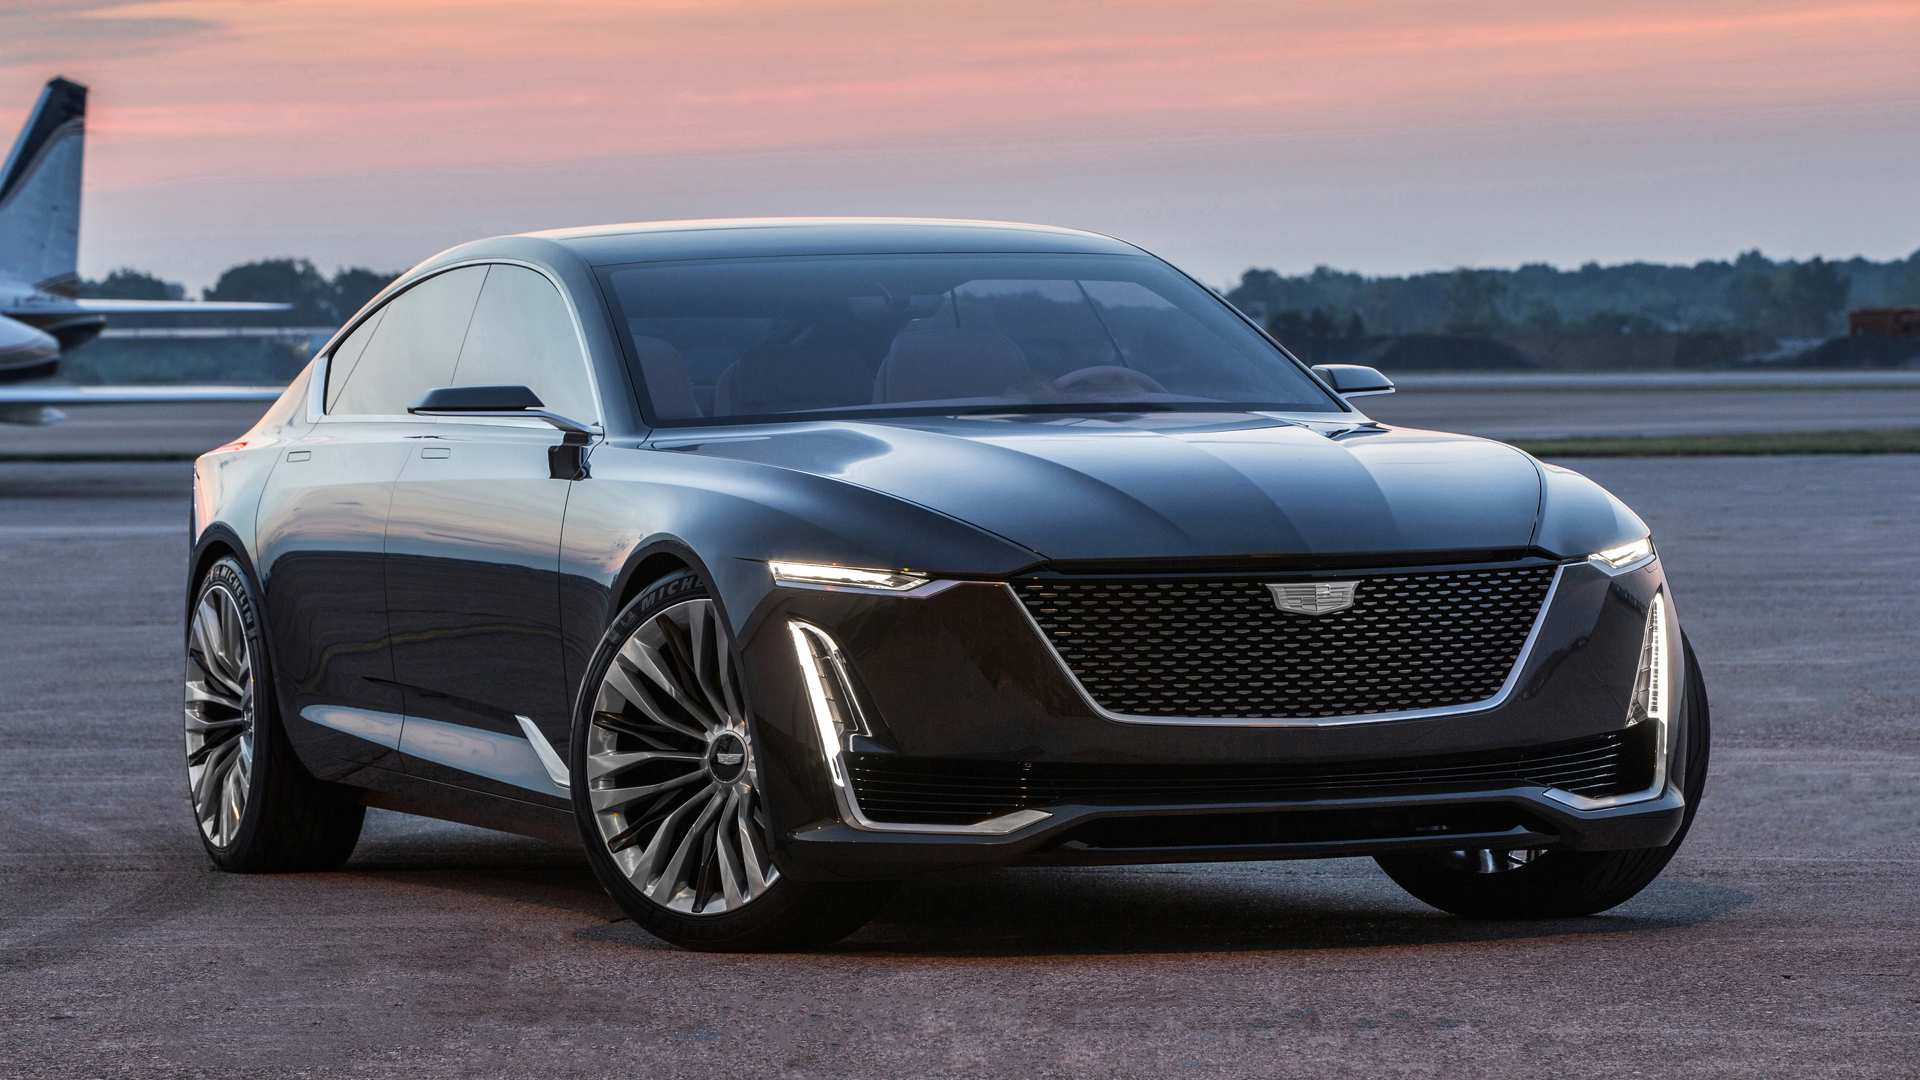 75 New Cadillac Flagship 2019 Release Date Release Date for Cadillac Flagship 2019 Release Date